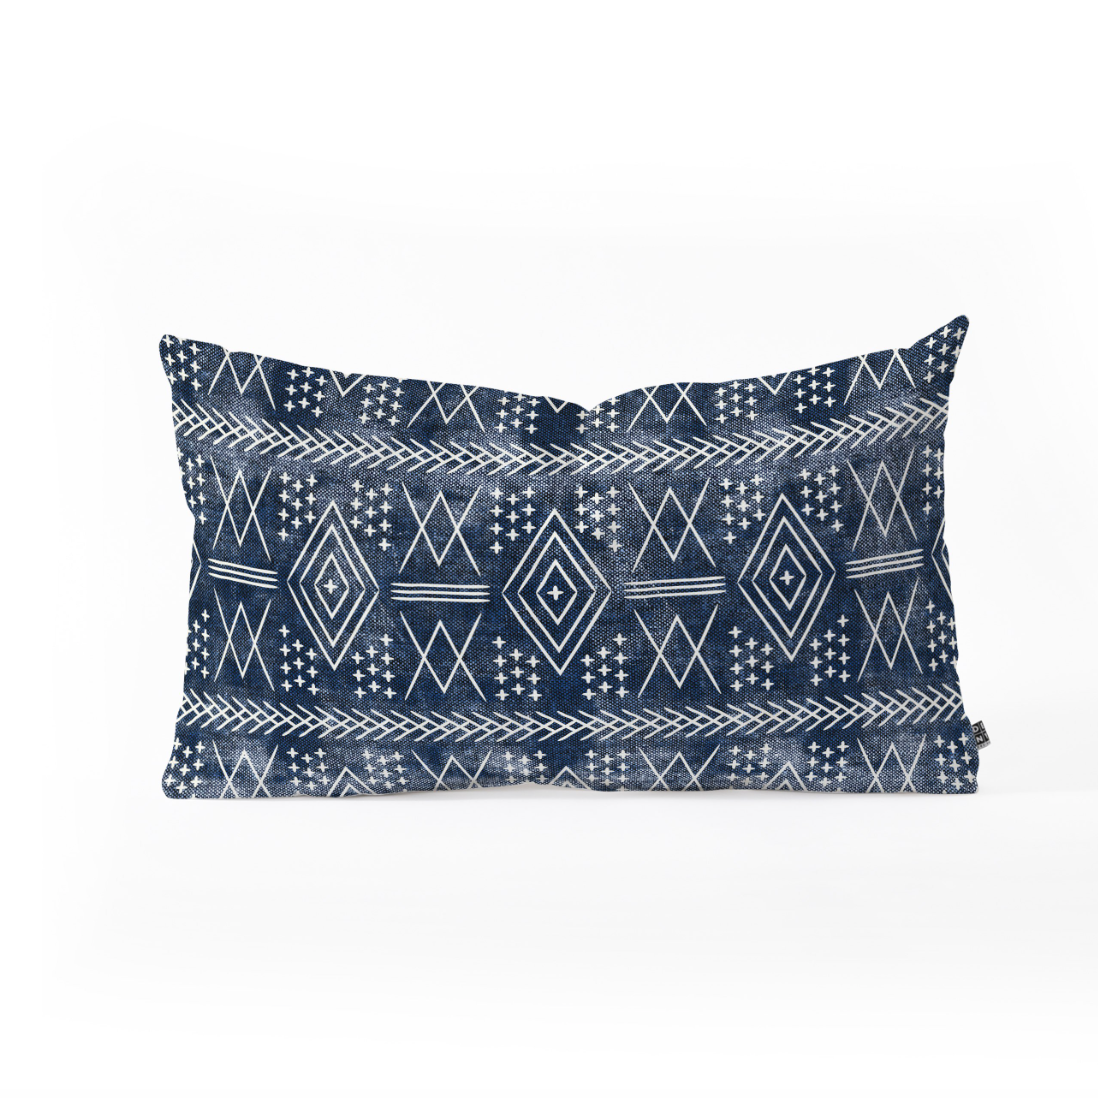 Oblong Throw Pillow offered by Deny Designs using the  Vintage Moroccan  design.